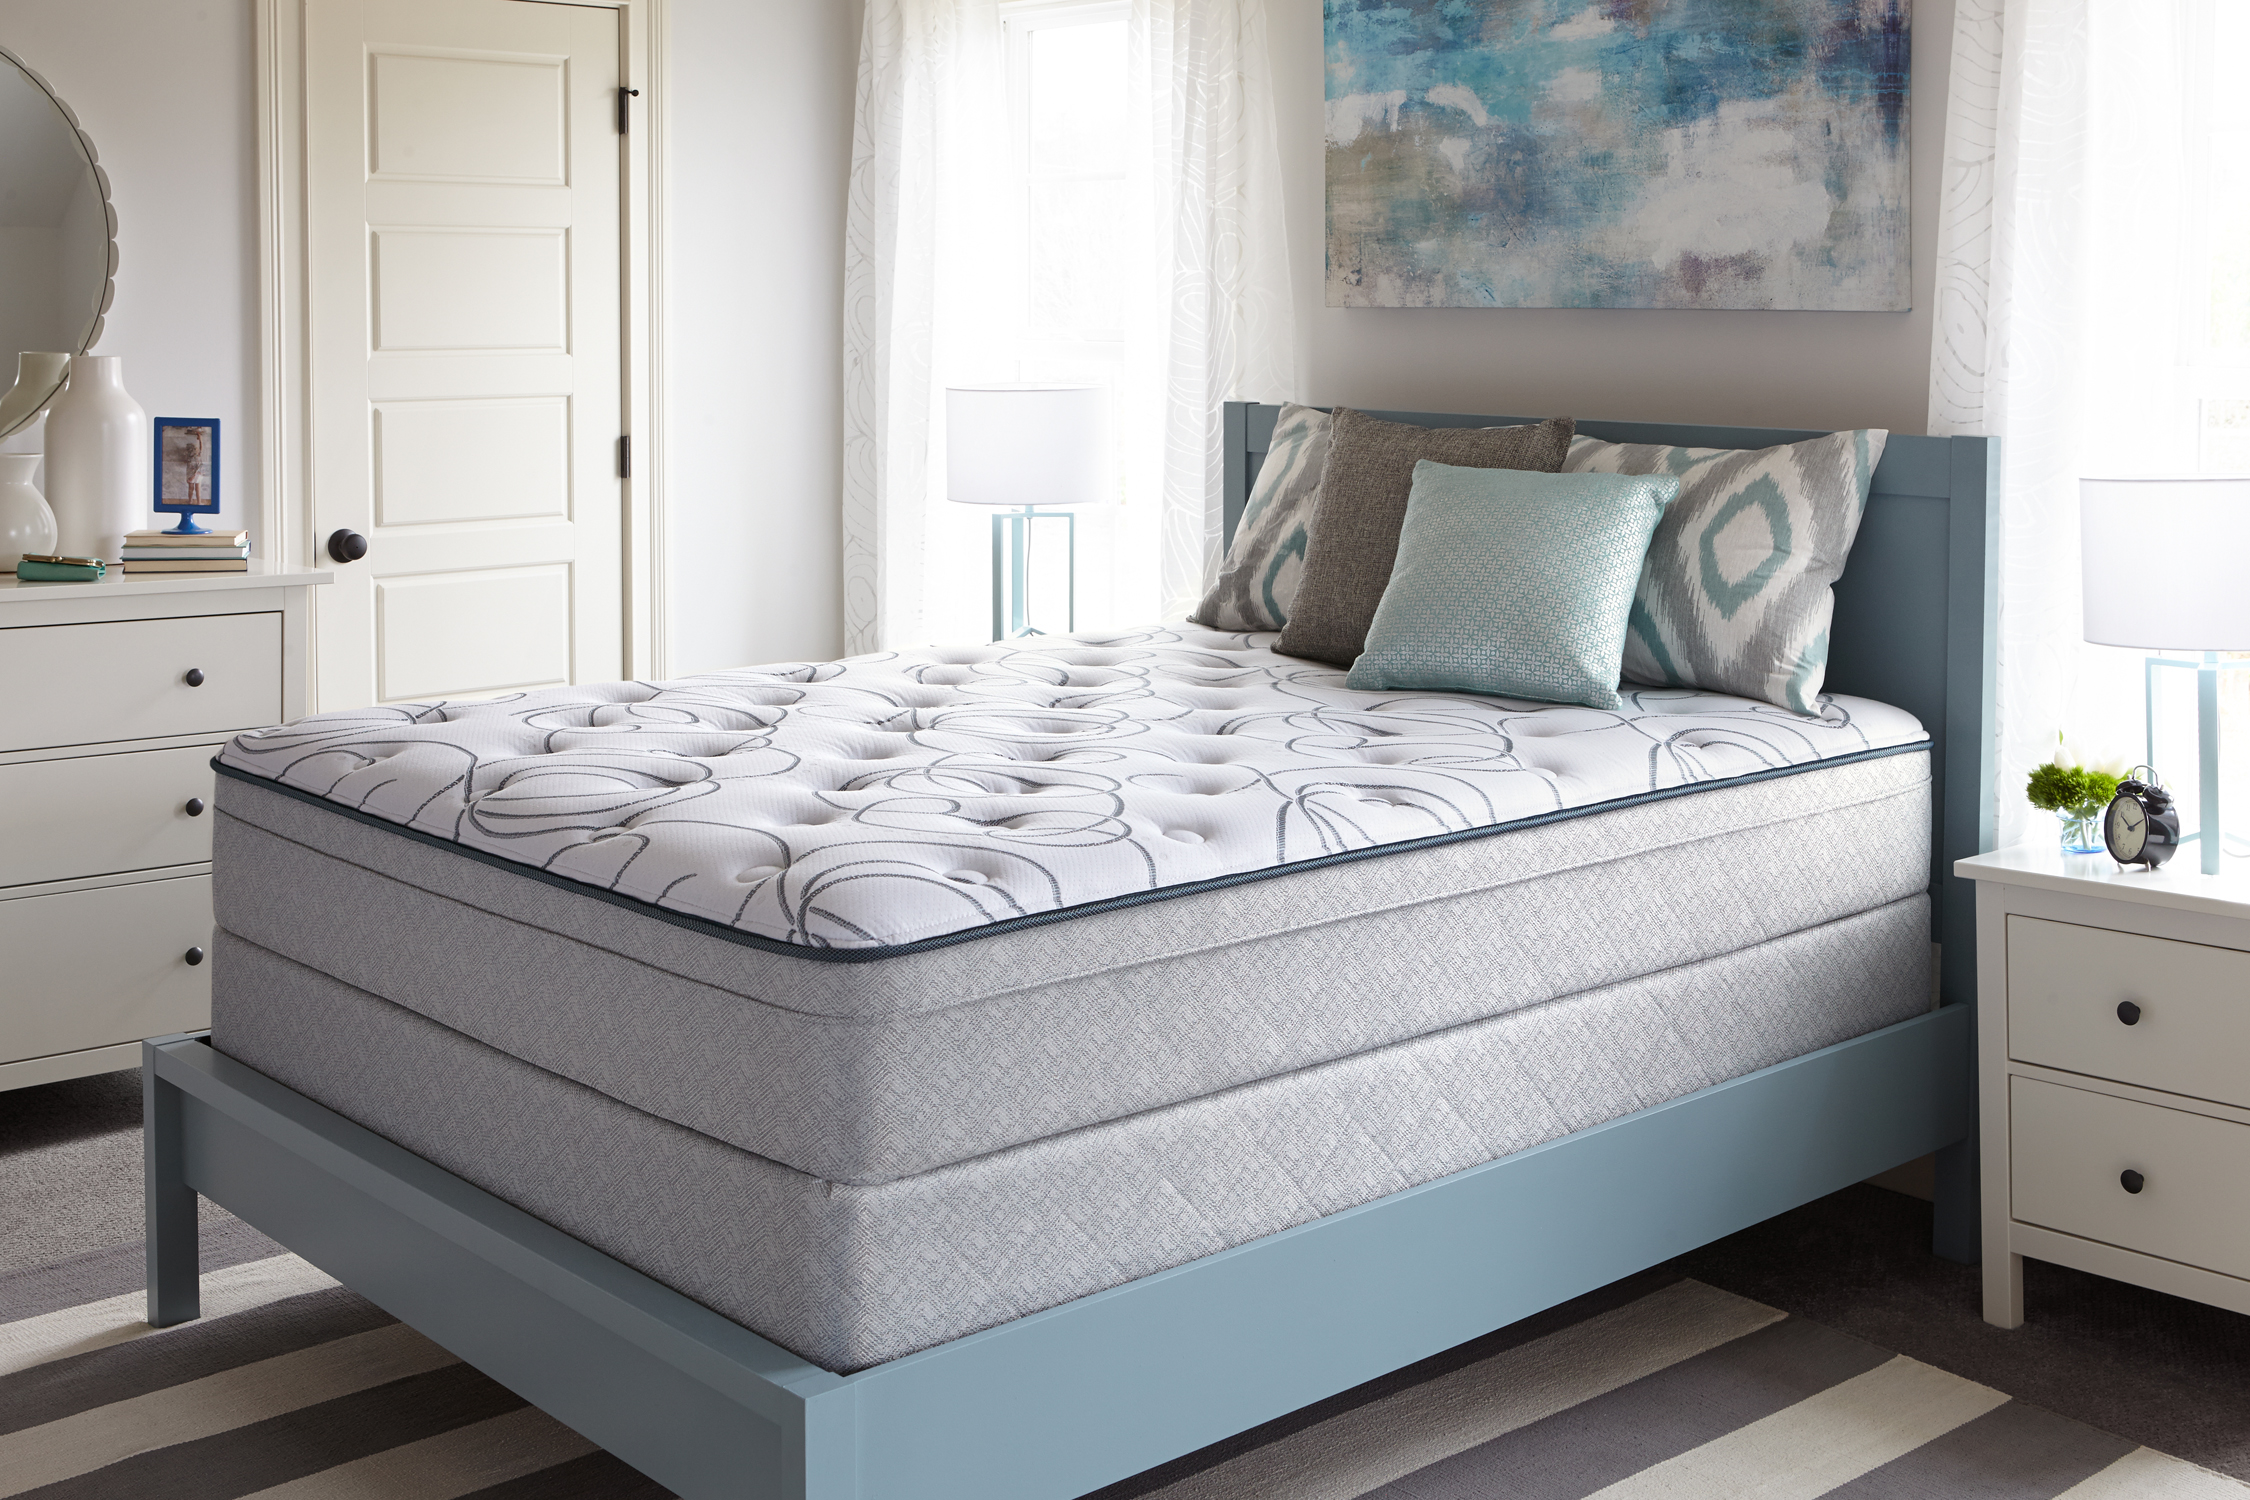 Mattresses - Newington\'s Top Rated Local® Mattress Store | Mattress ...